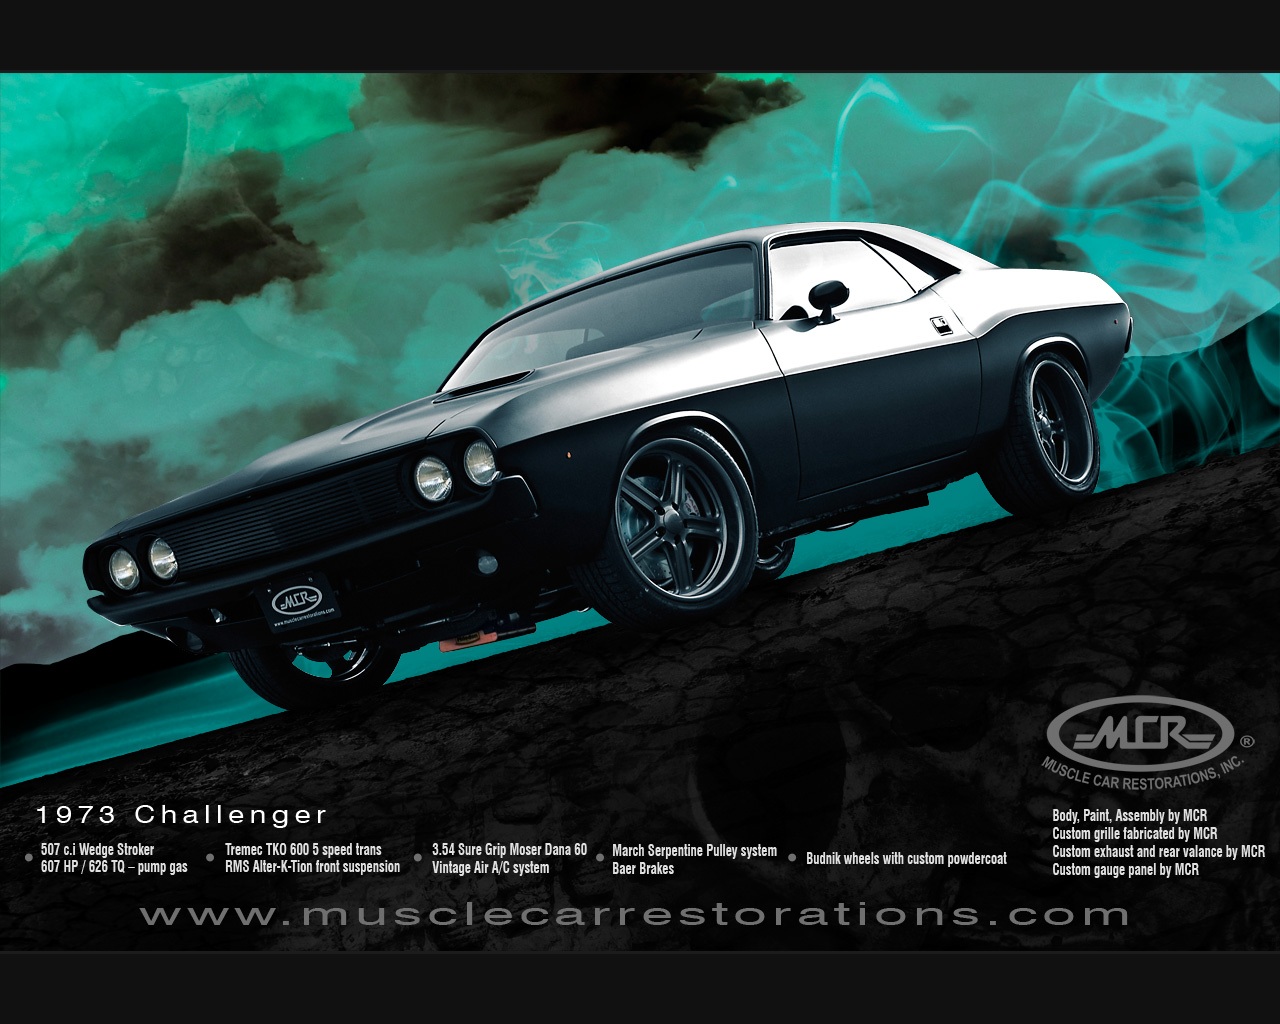 new wallpapers muscle car - photo #23